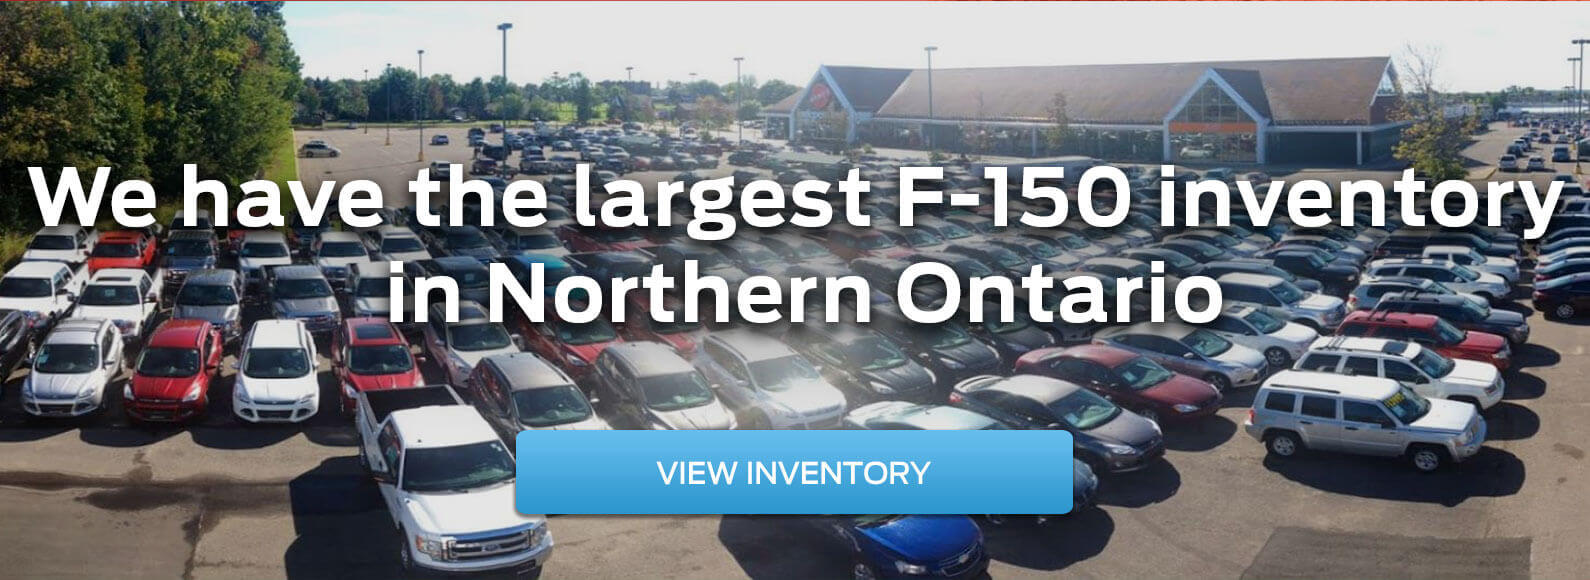 Largest F-150 inventory in Northern Ontario